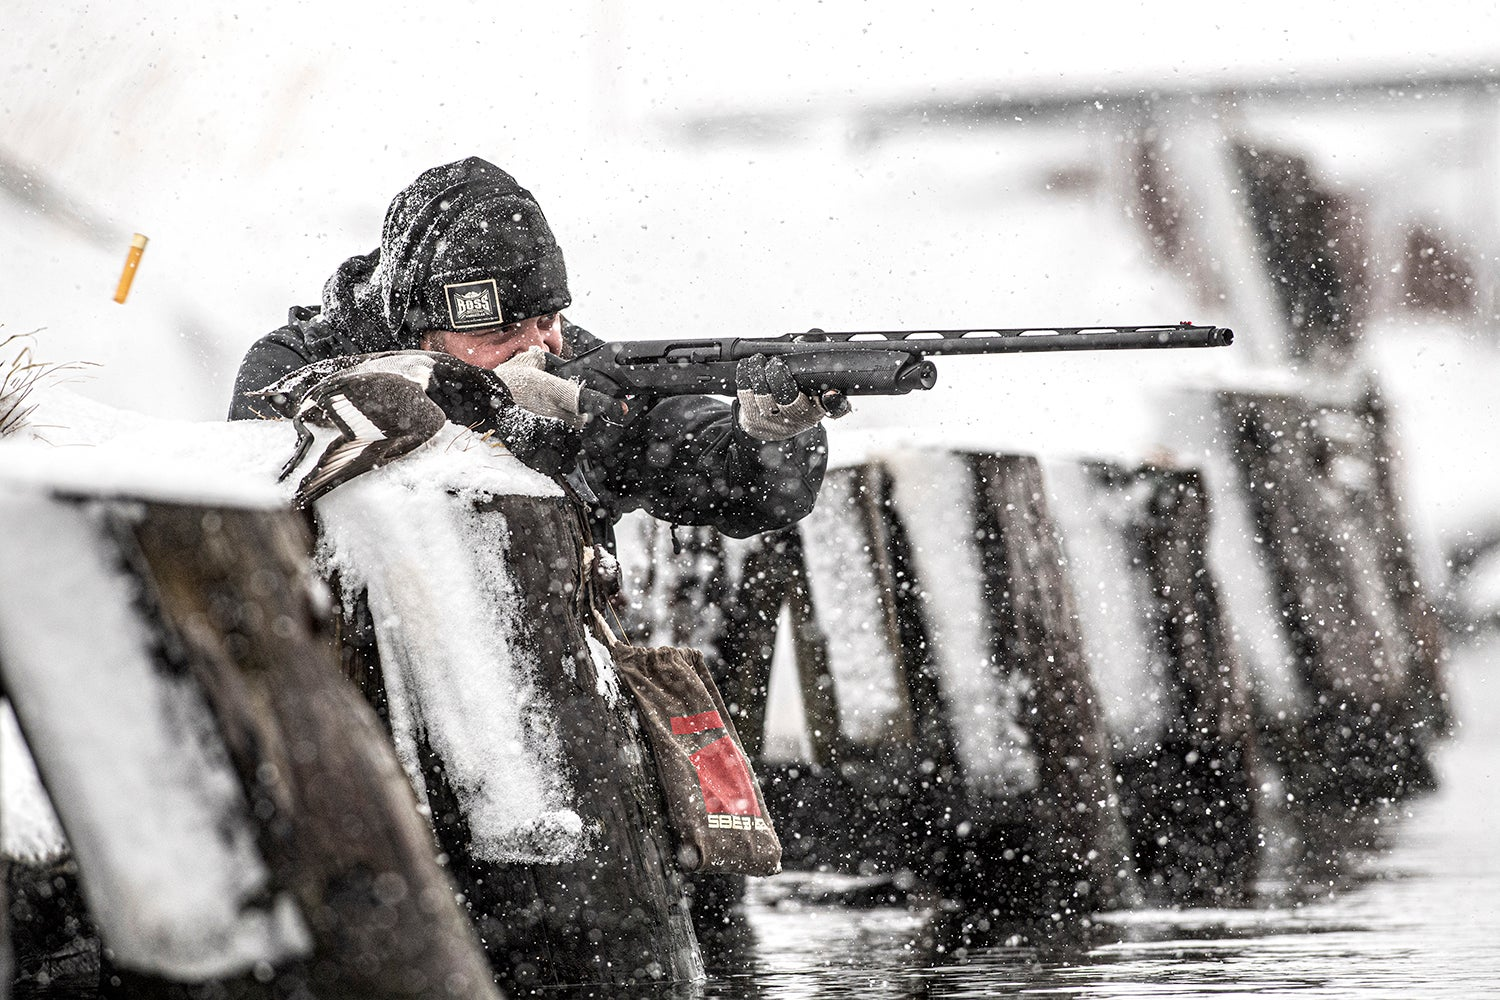 Luke Kjos takes aim with the new Benelli Super Black Eagle 3 20-gauge.